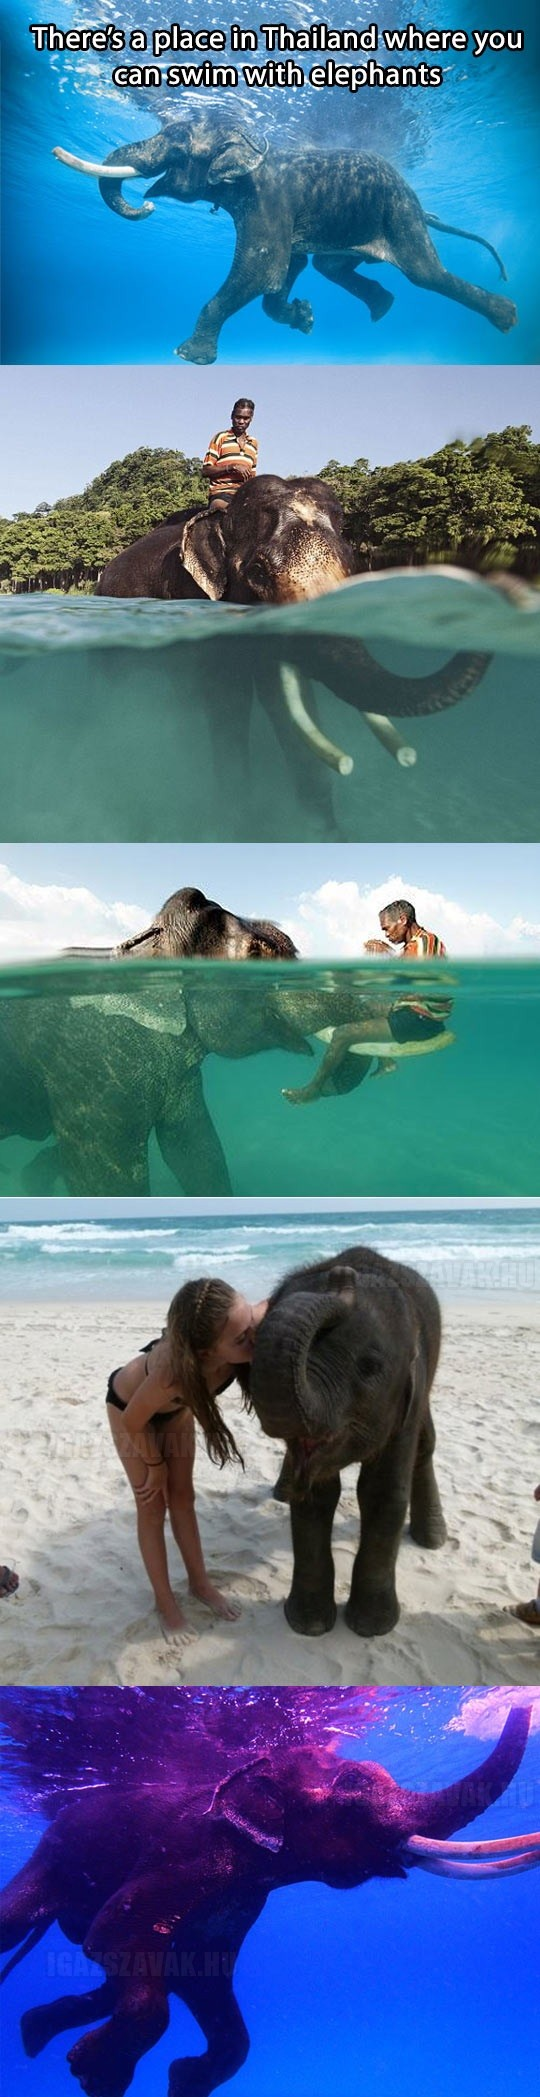 cool-elephants-swimming-Thailand-beach